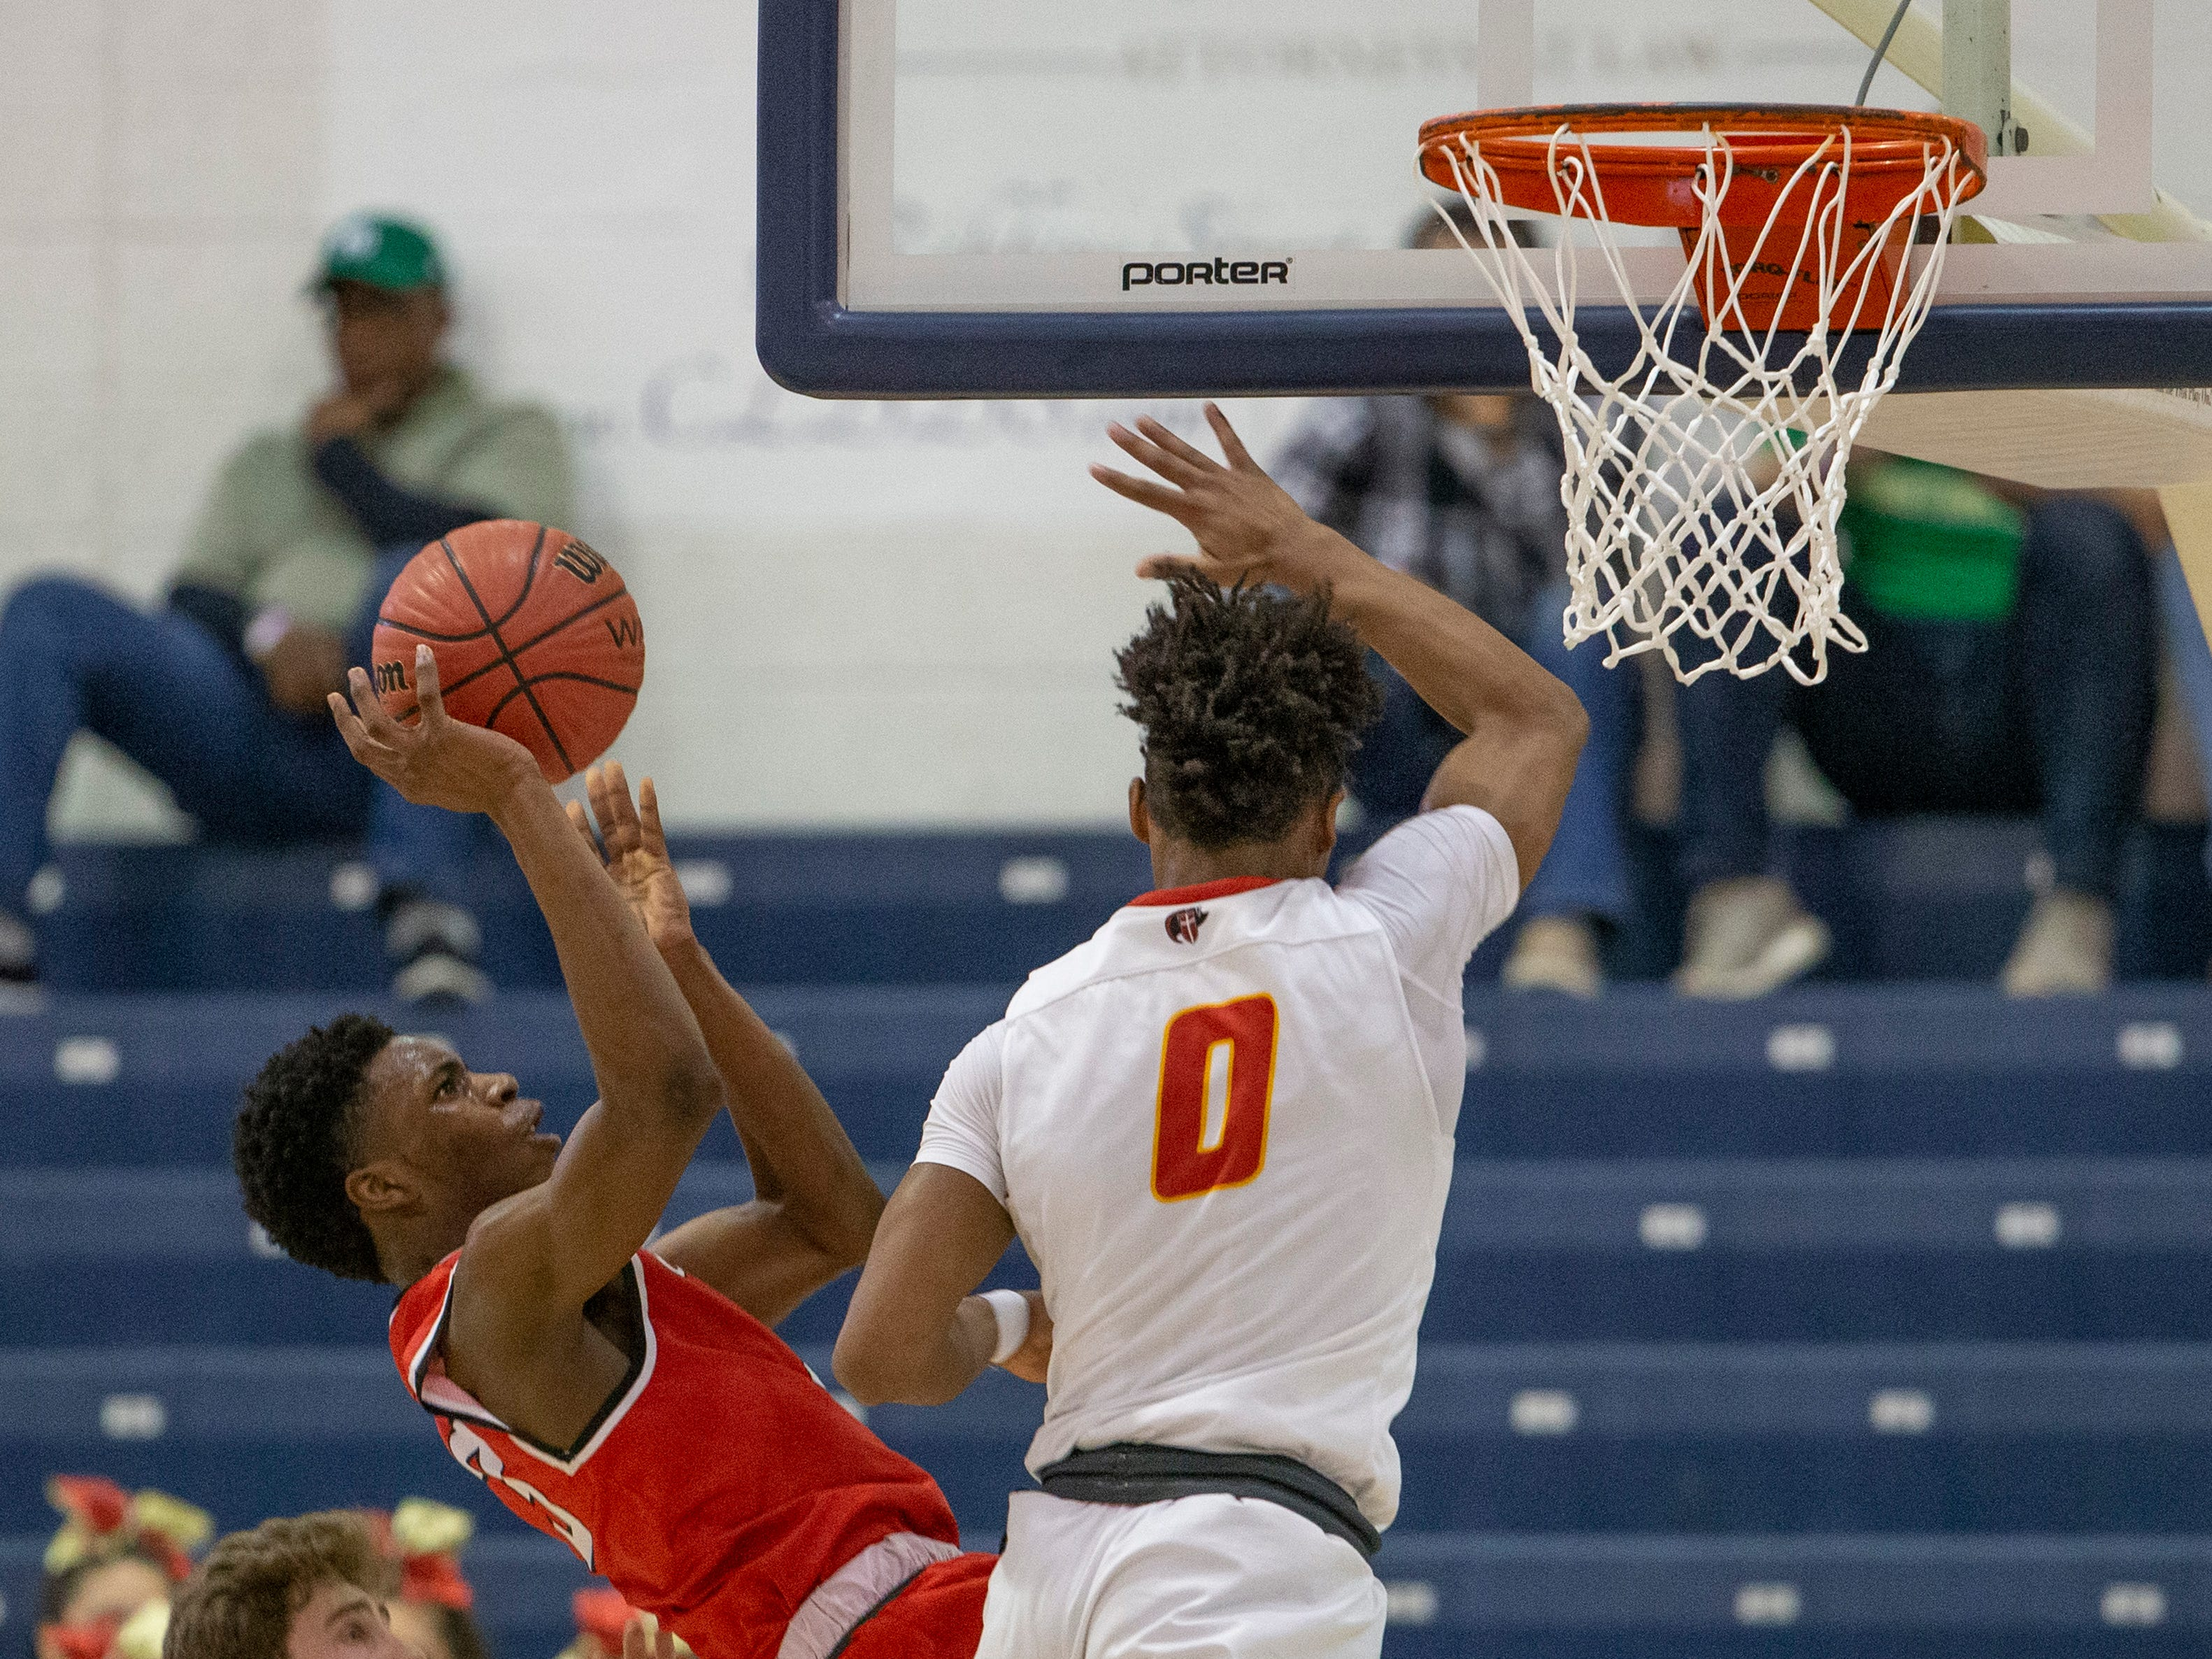 East Side's Nasir Johnson falls backwards as he shoots in first half action. Bergen Catholic vs. Newark East Side in the 5:30 p.m. semifinals of the 2019 NJSIAA Tournament of Champions in Toms River on March 15, 2019.